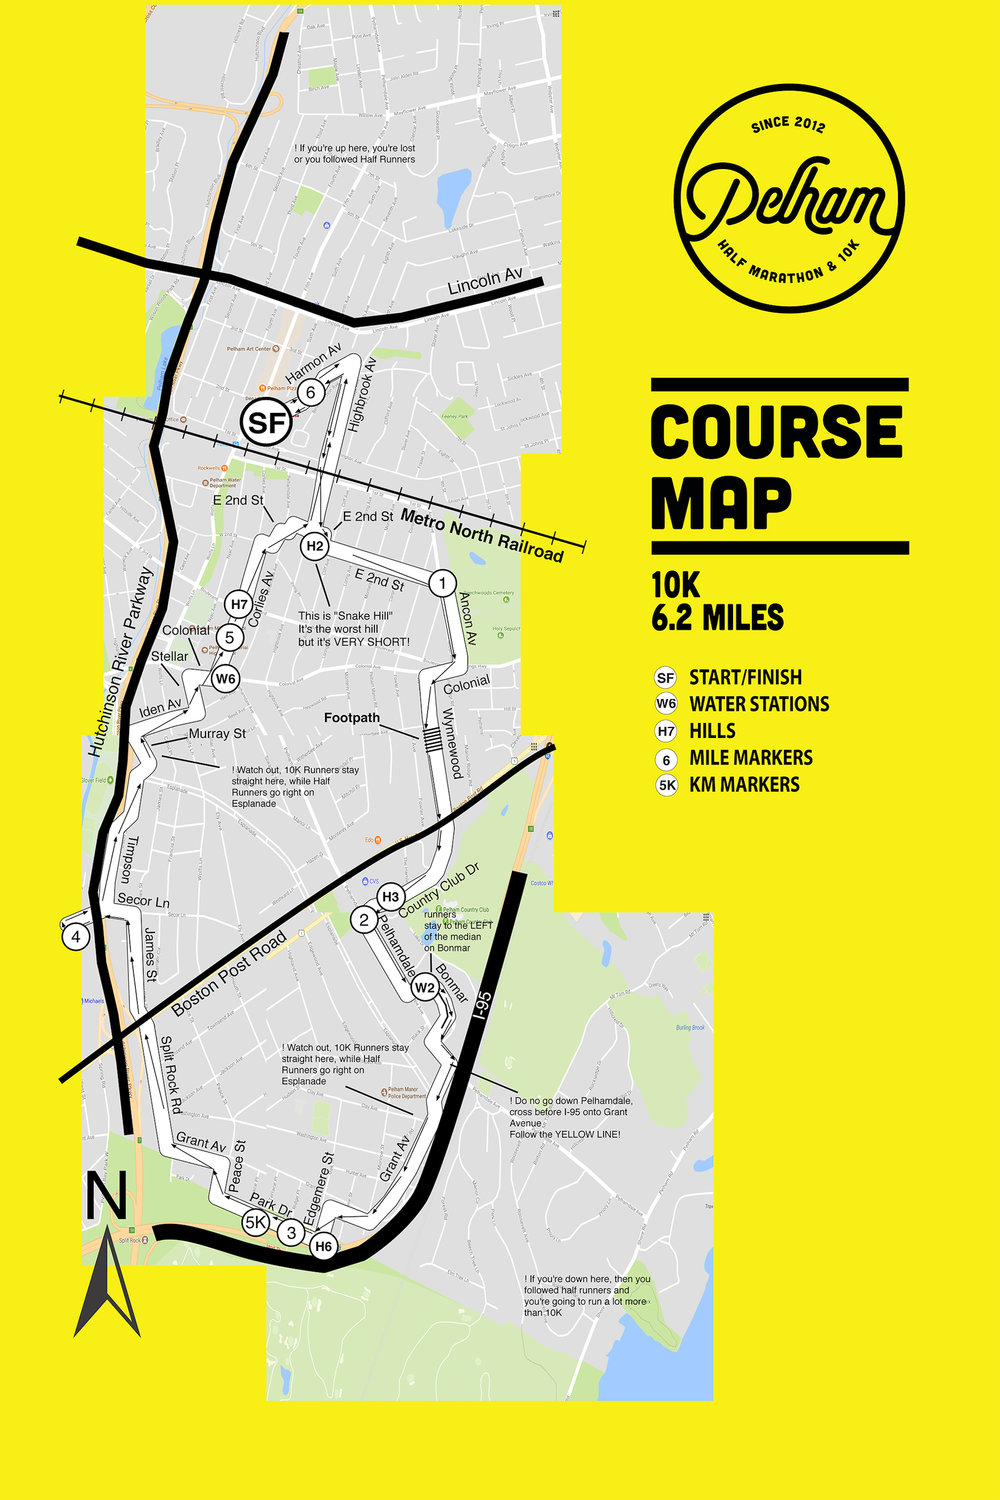 2017 PHM 10K Course Map